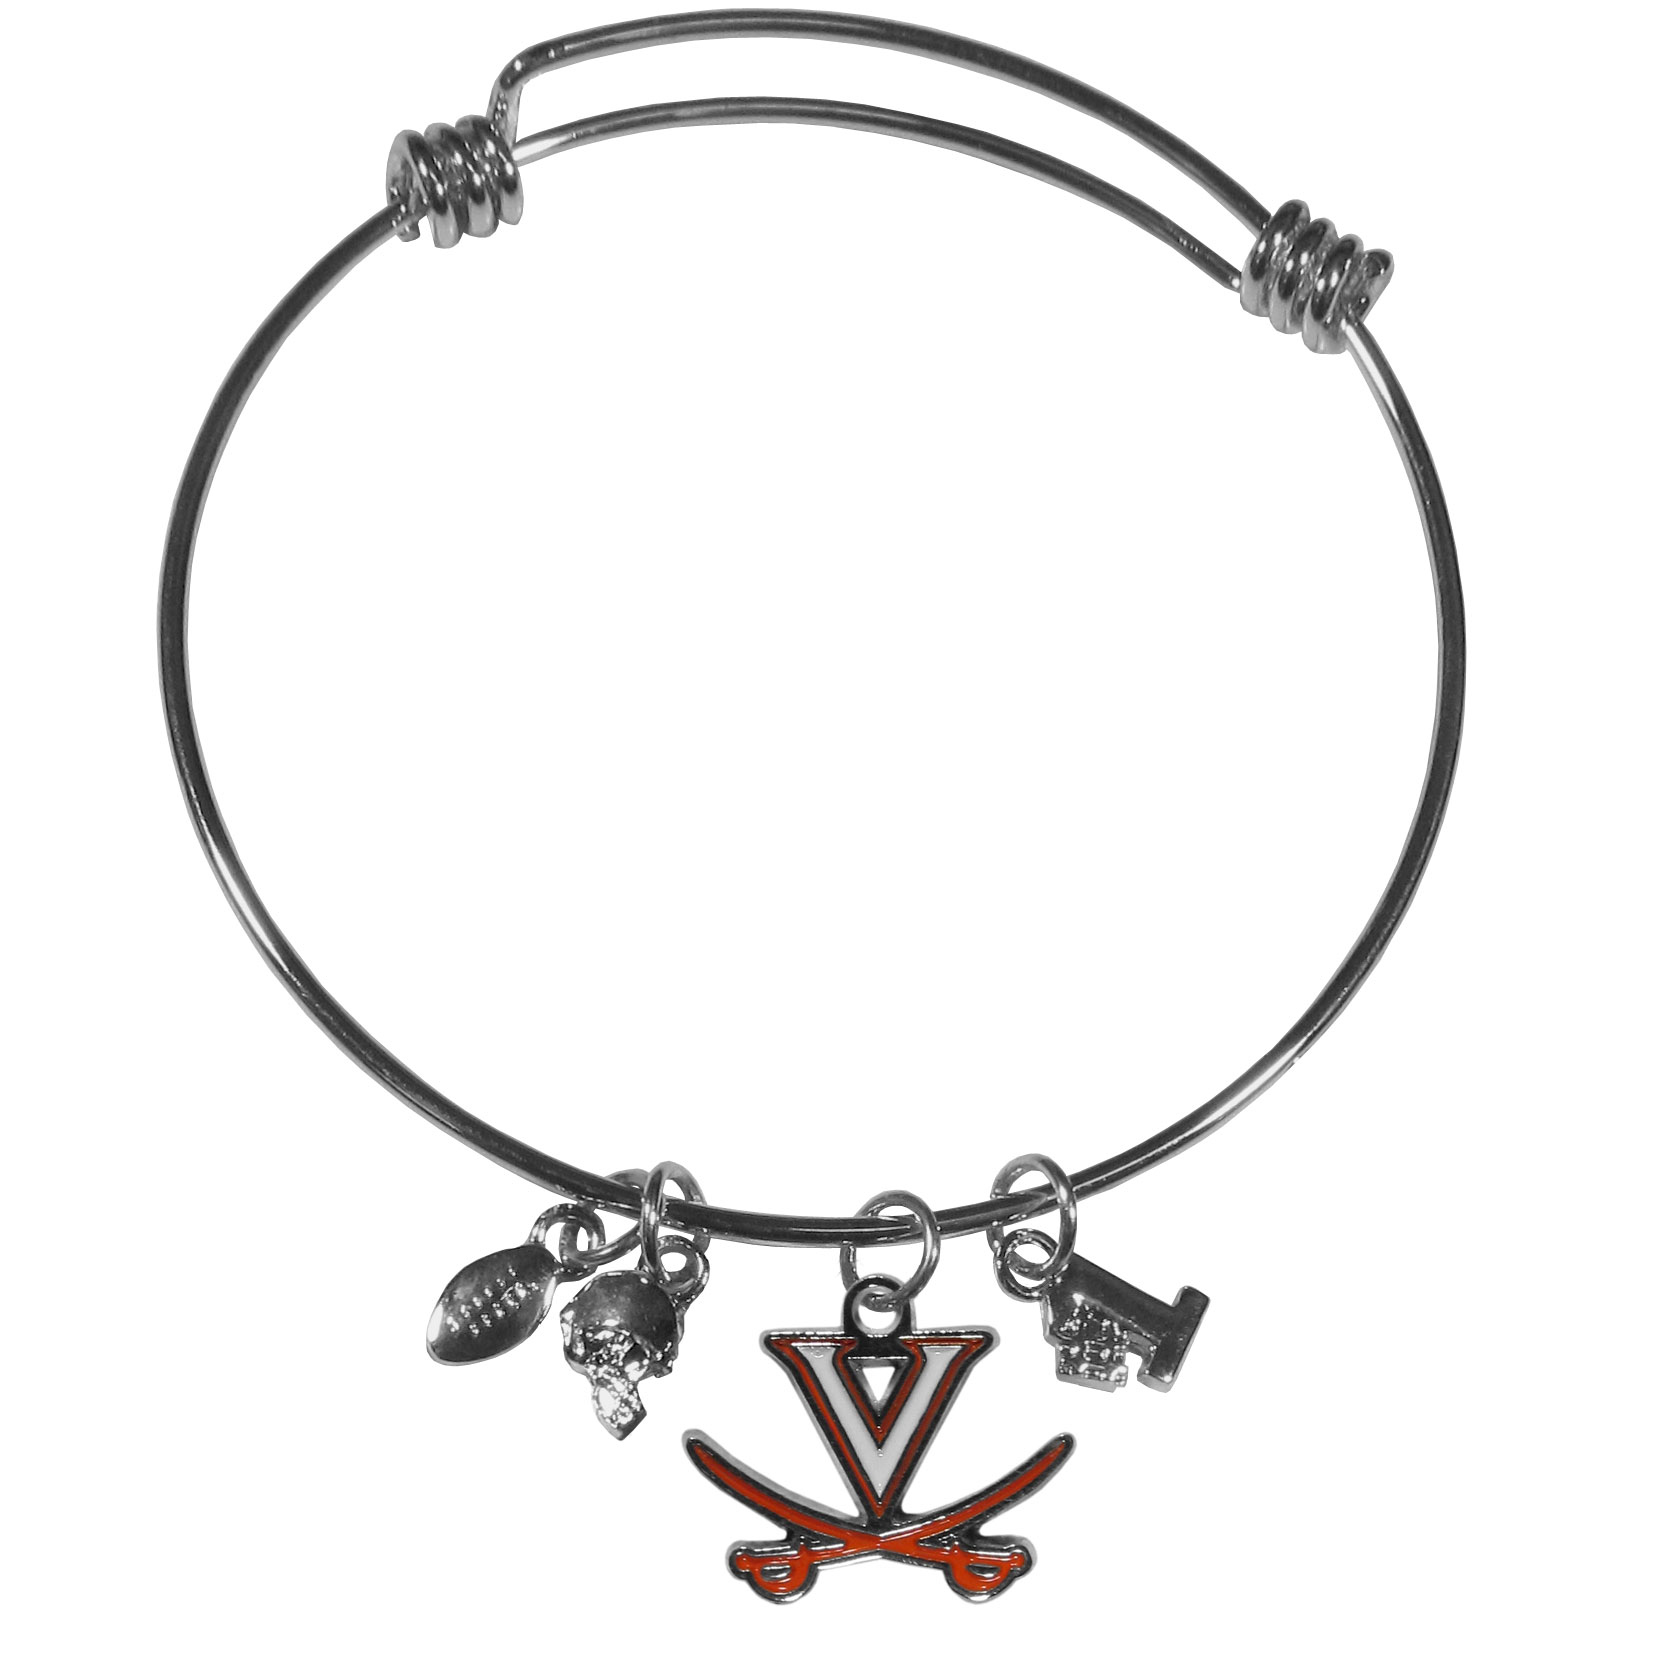 Virginia Cavaliers Charm Bangle Bracelet - Adjustable wire bracelets are all the rage and this Virginia Cavaliers bracelet matches the popular trend with your beloved team. The bracelet features 4 charms in total, each feature exceptional detail and the team charm has enameled team colors.